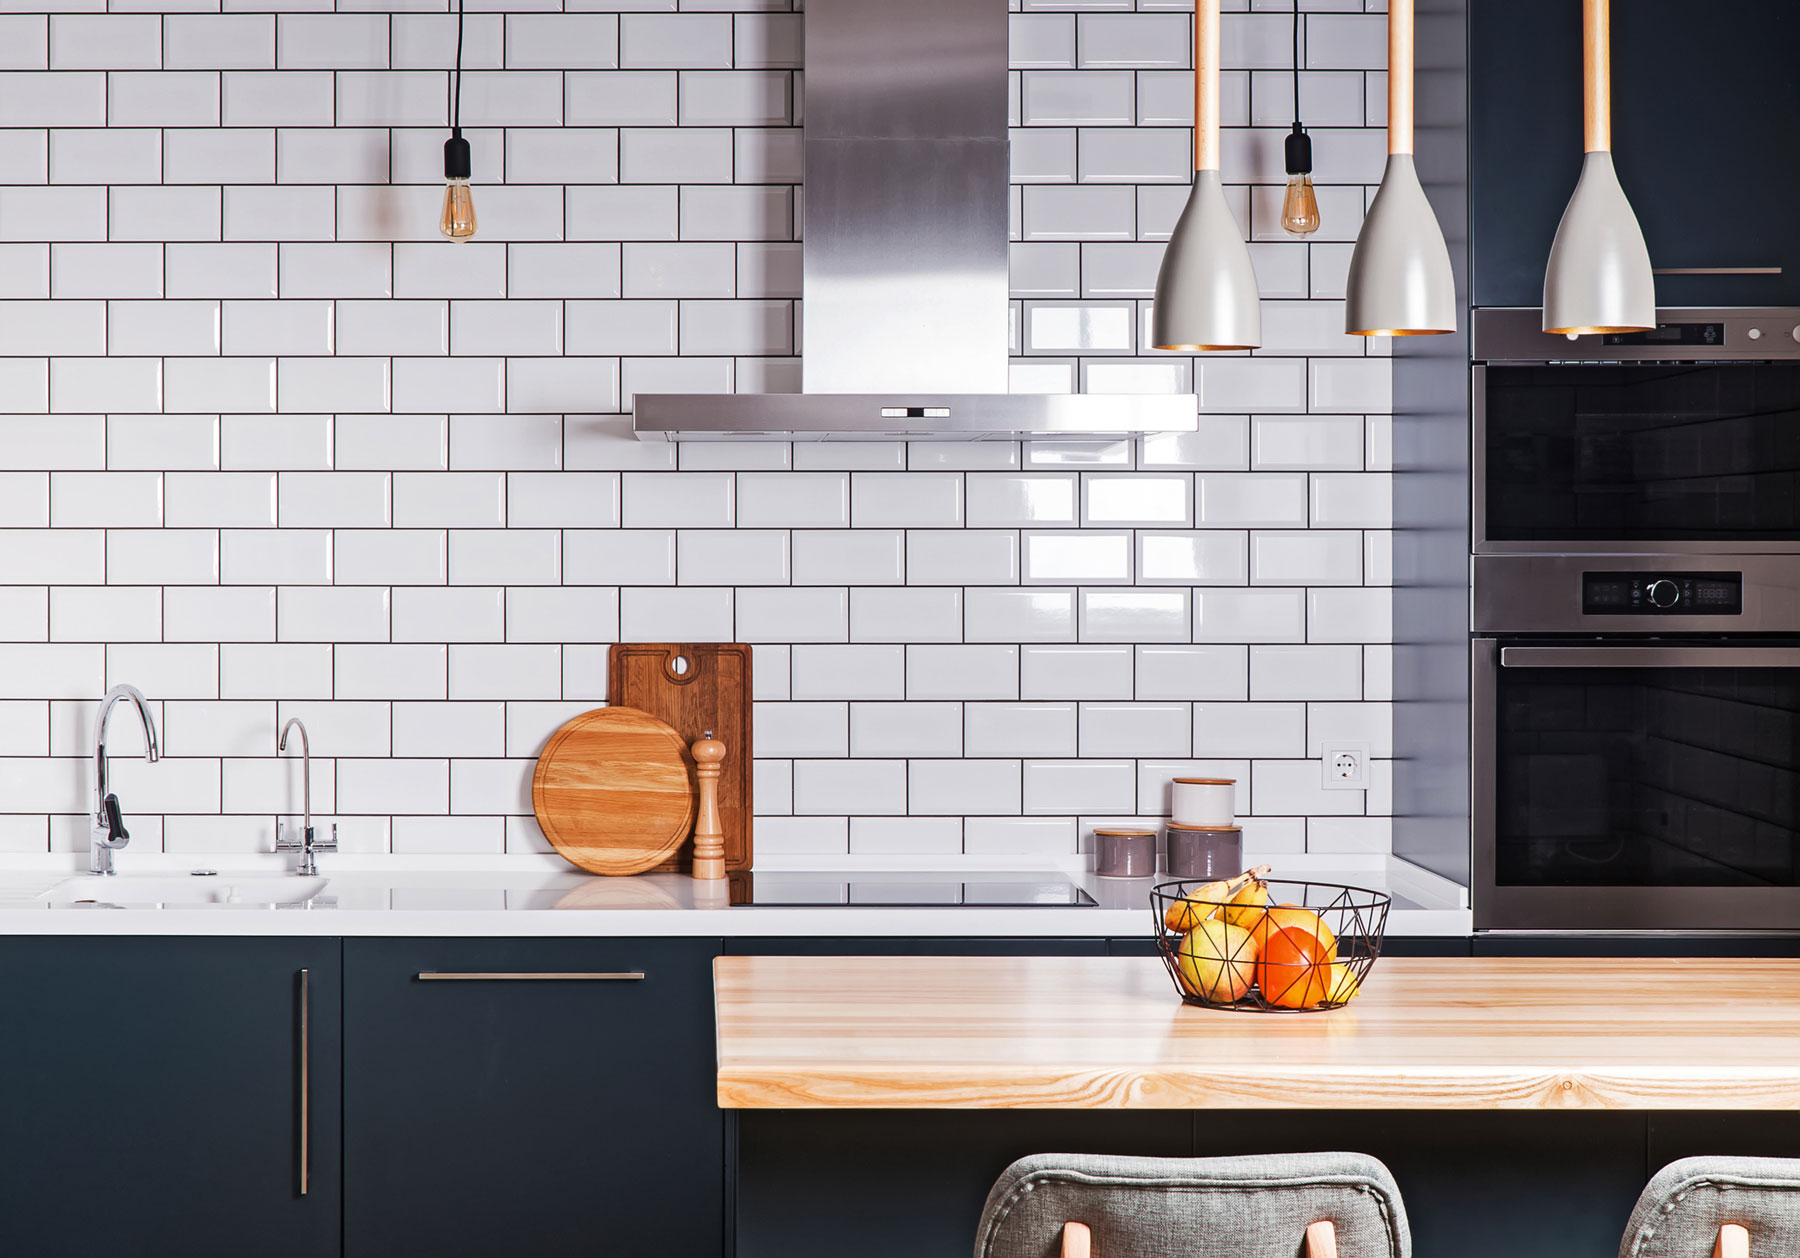 Backsplash tile ideas - Kitchen with subway tile backsplash & Kitchen Tile Backsplash Ideas You Need to See Right Now | Real Simple